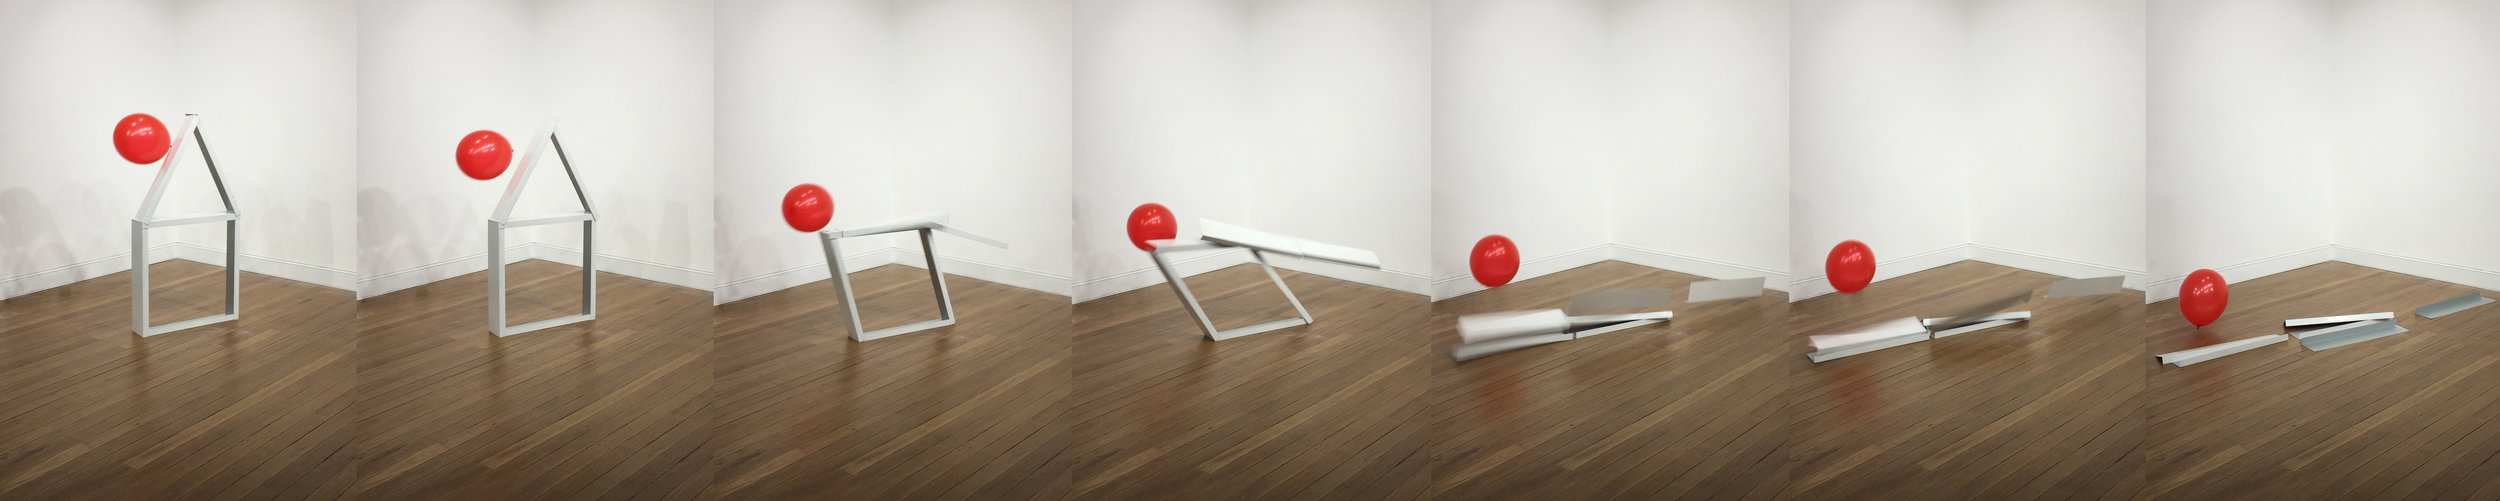 Jordan Azcune, Red alert and panic bells , 2017, white-coated steel sheets, dimensions variable. Photo courtesy Jordan Azcune.  Click picture to enlarge.